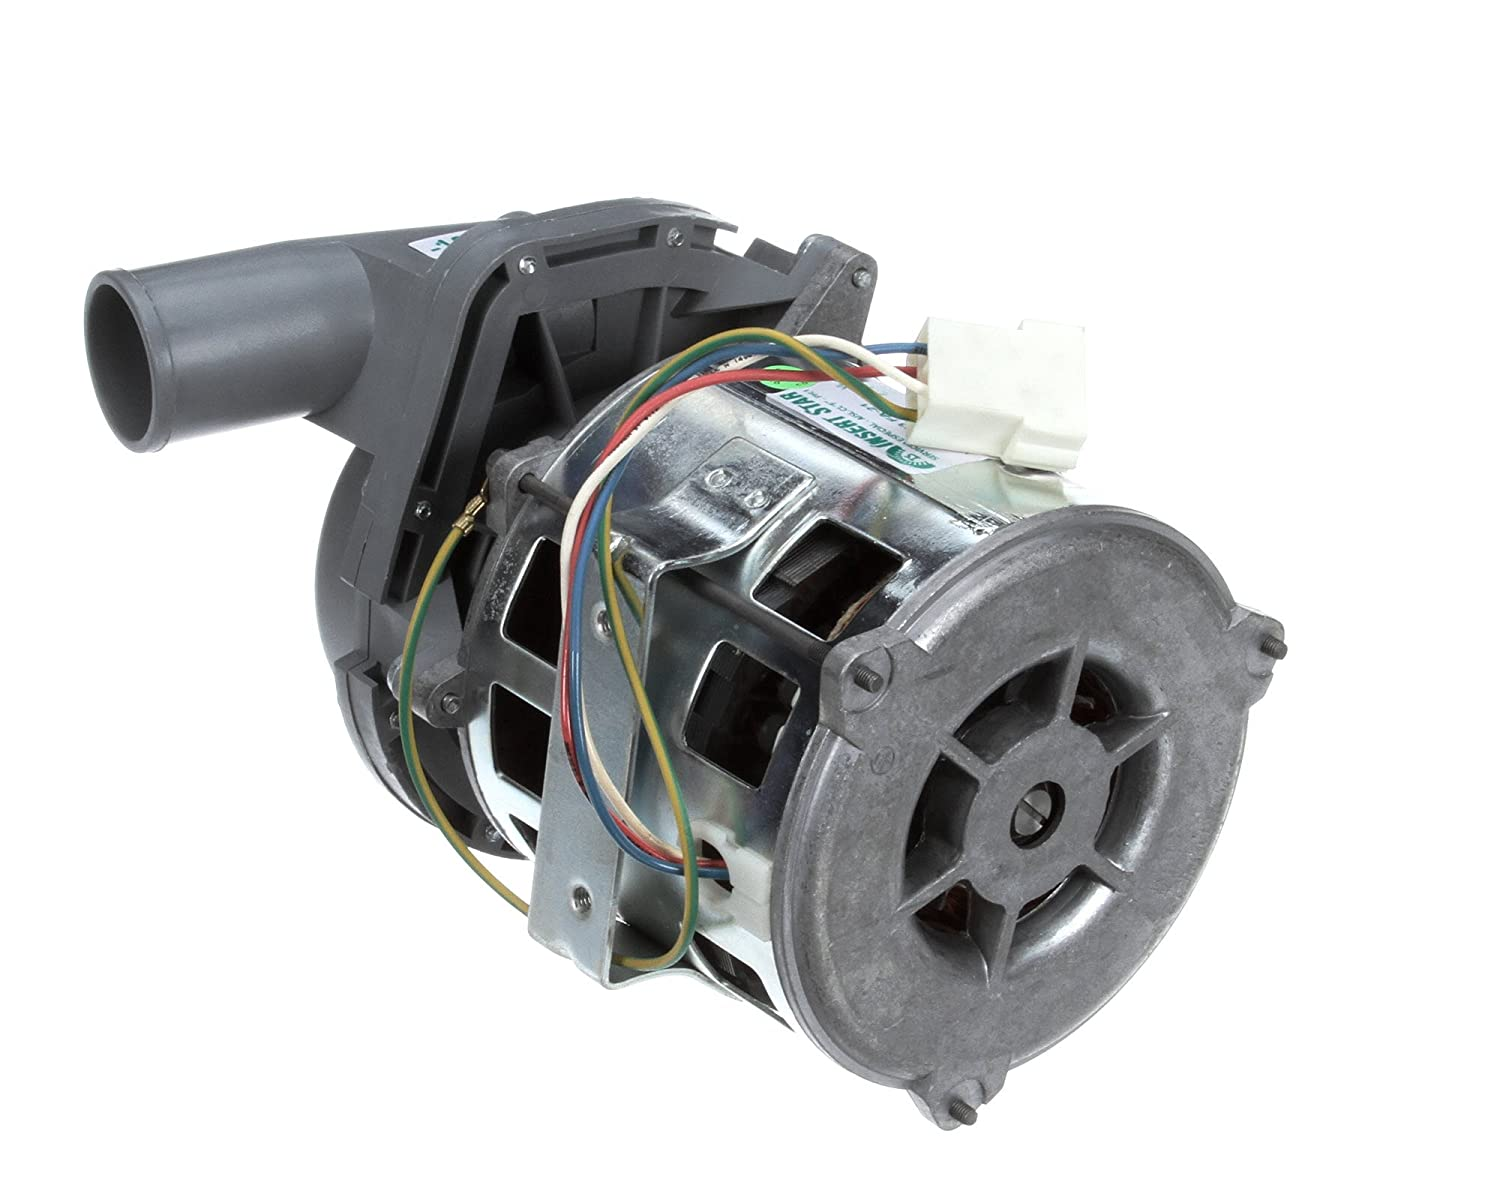 Fagor Commercial 12102834 mart Wash Pump Year-end gift